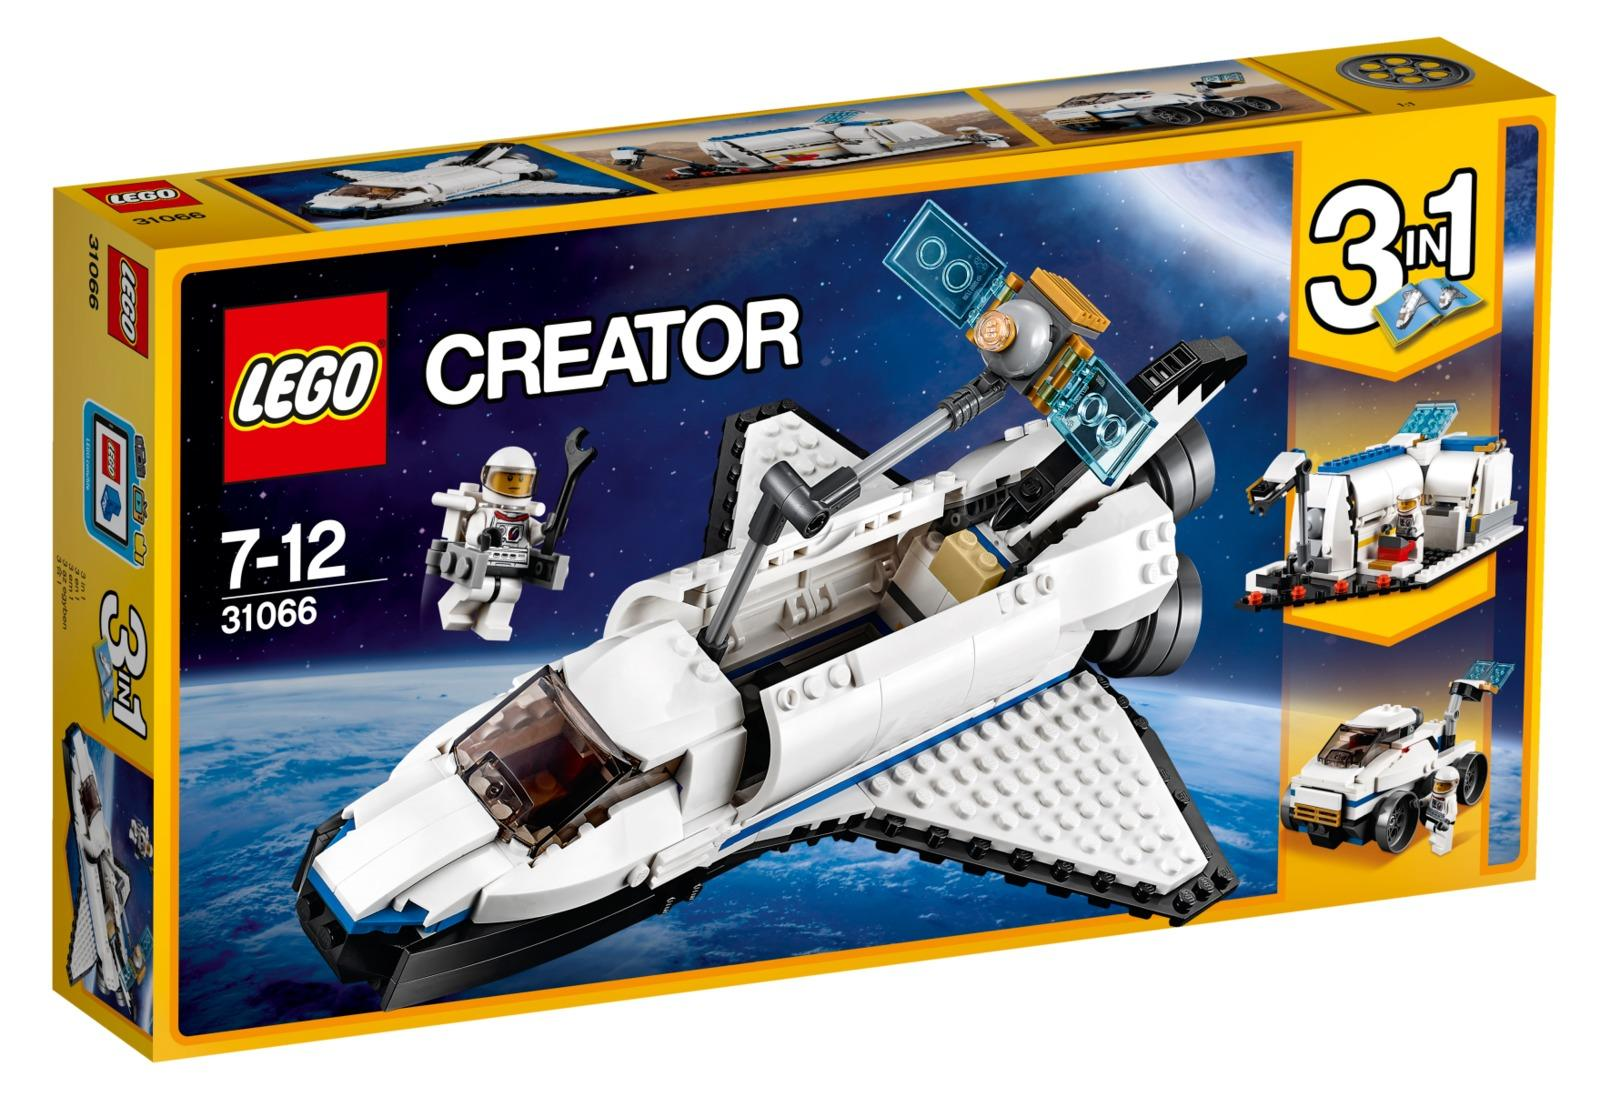 Lego Creator Creator Space Shuttle Explorer (31066)